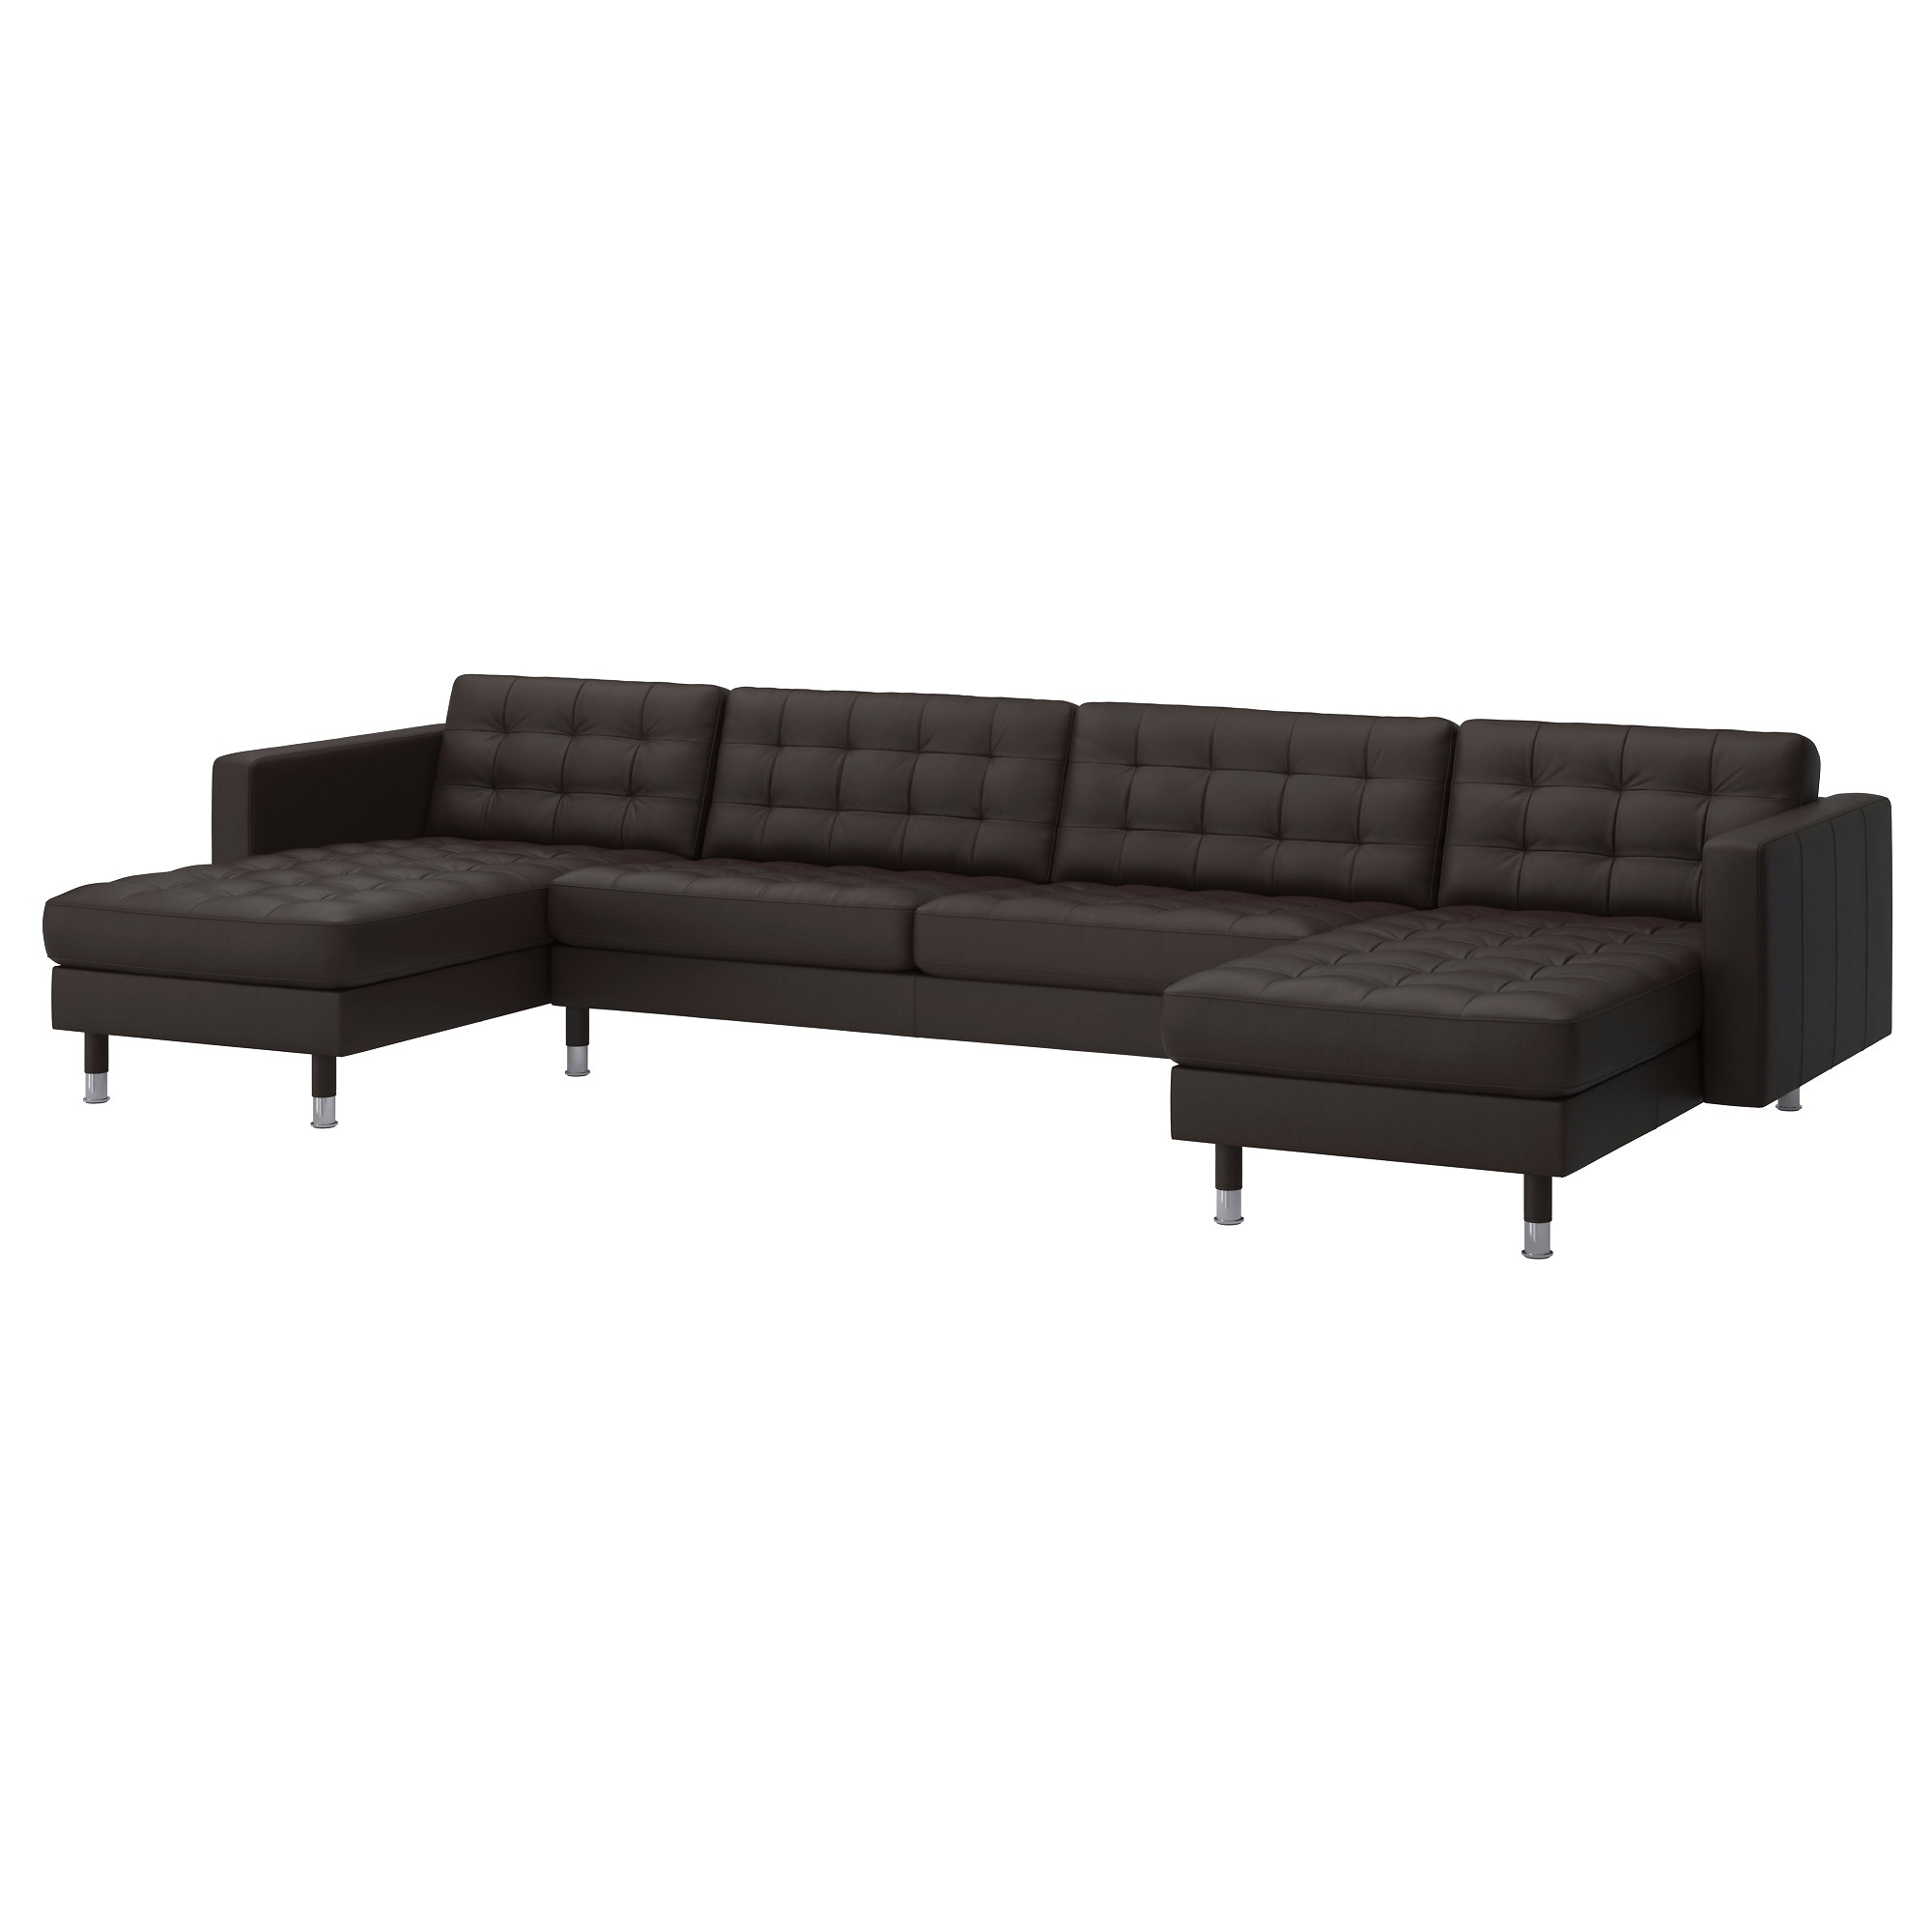 LANDSKRONA sectional 5-seat with chaise Grann Grann/Bomstad Bomstad dark  sc 1 st  Ikea : black and white sectional - Sectionals, Sofas & Couches